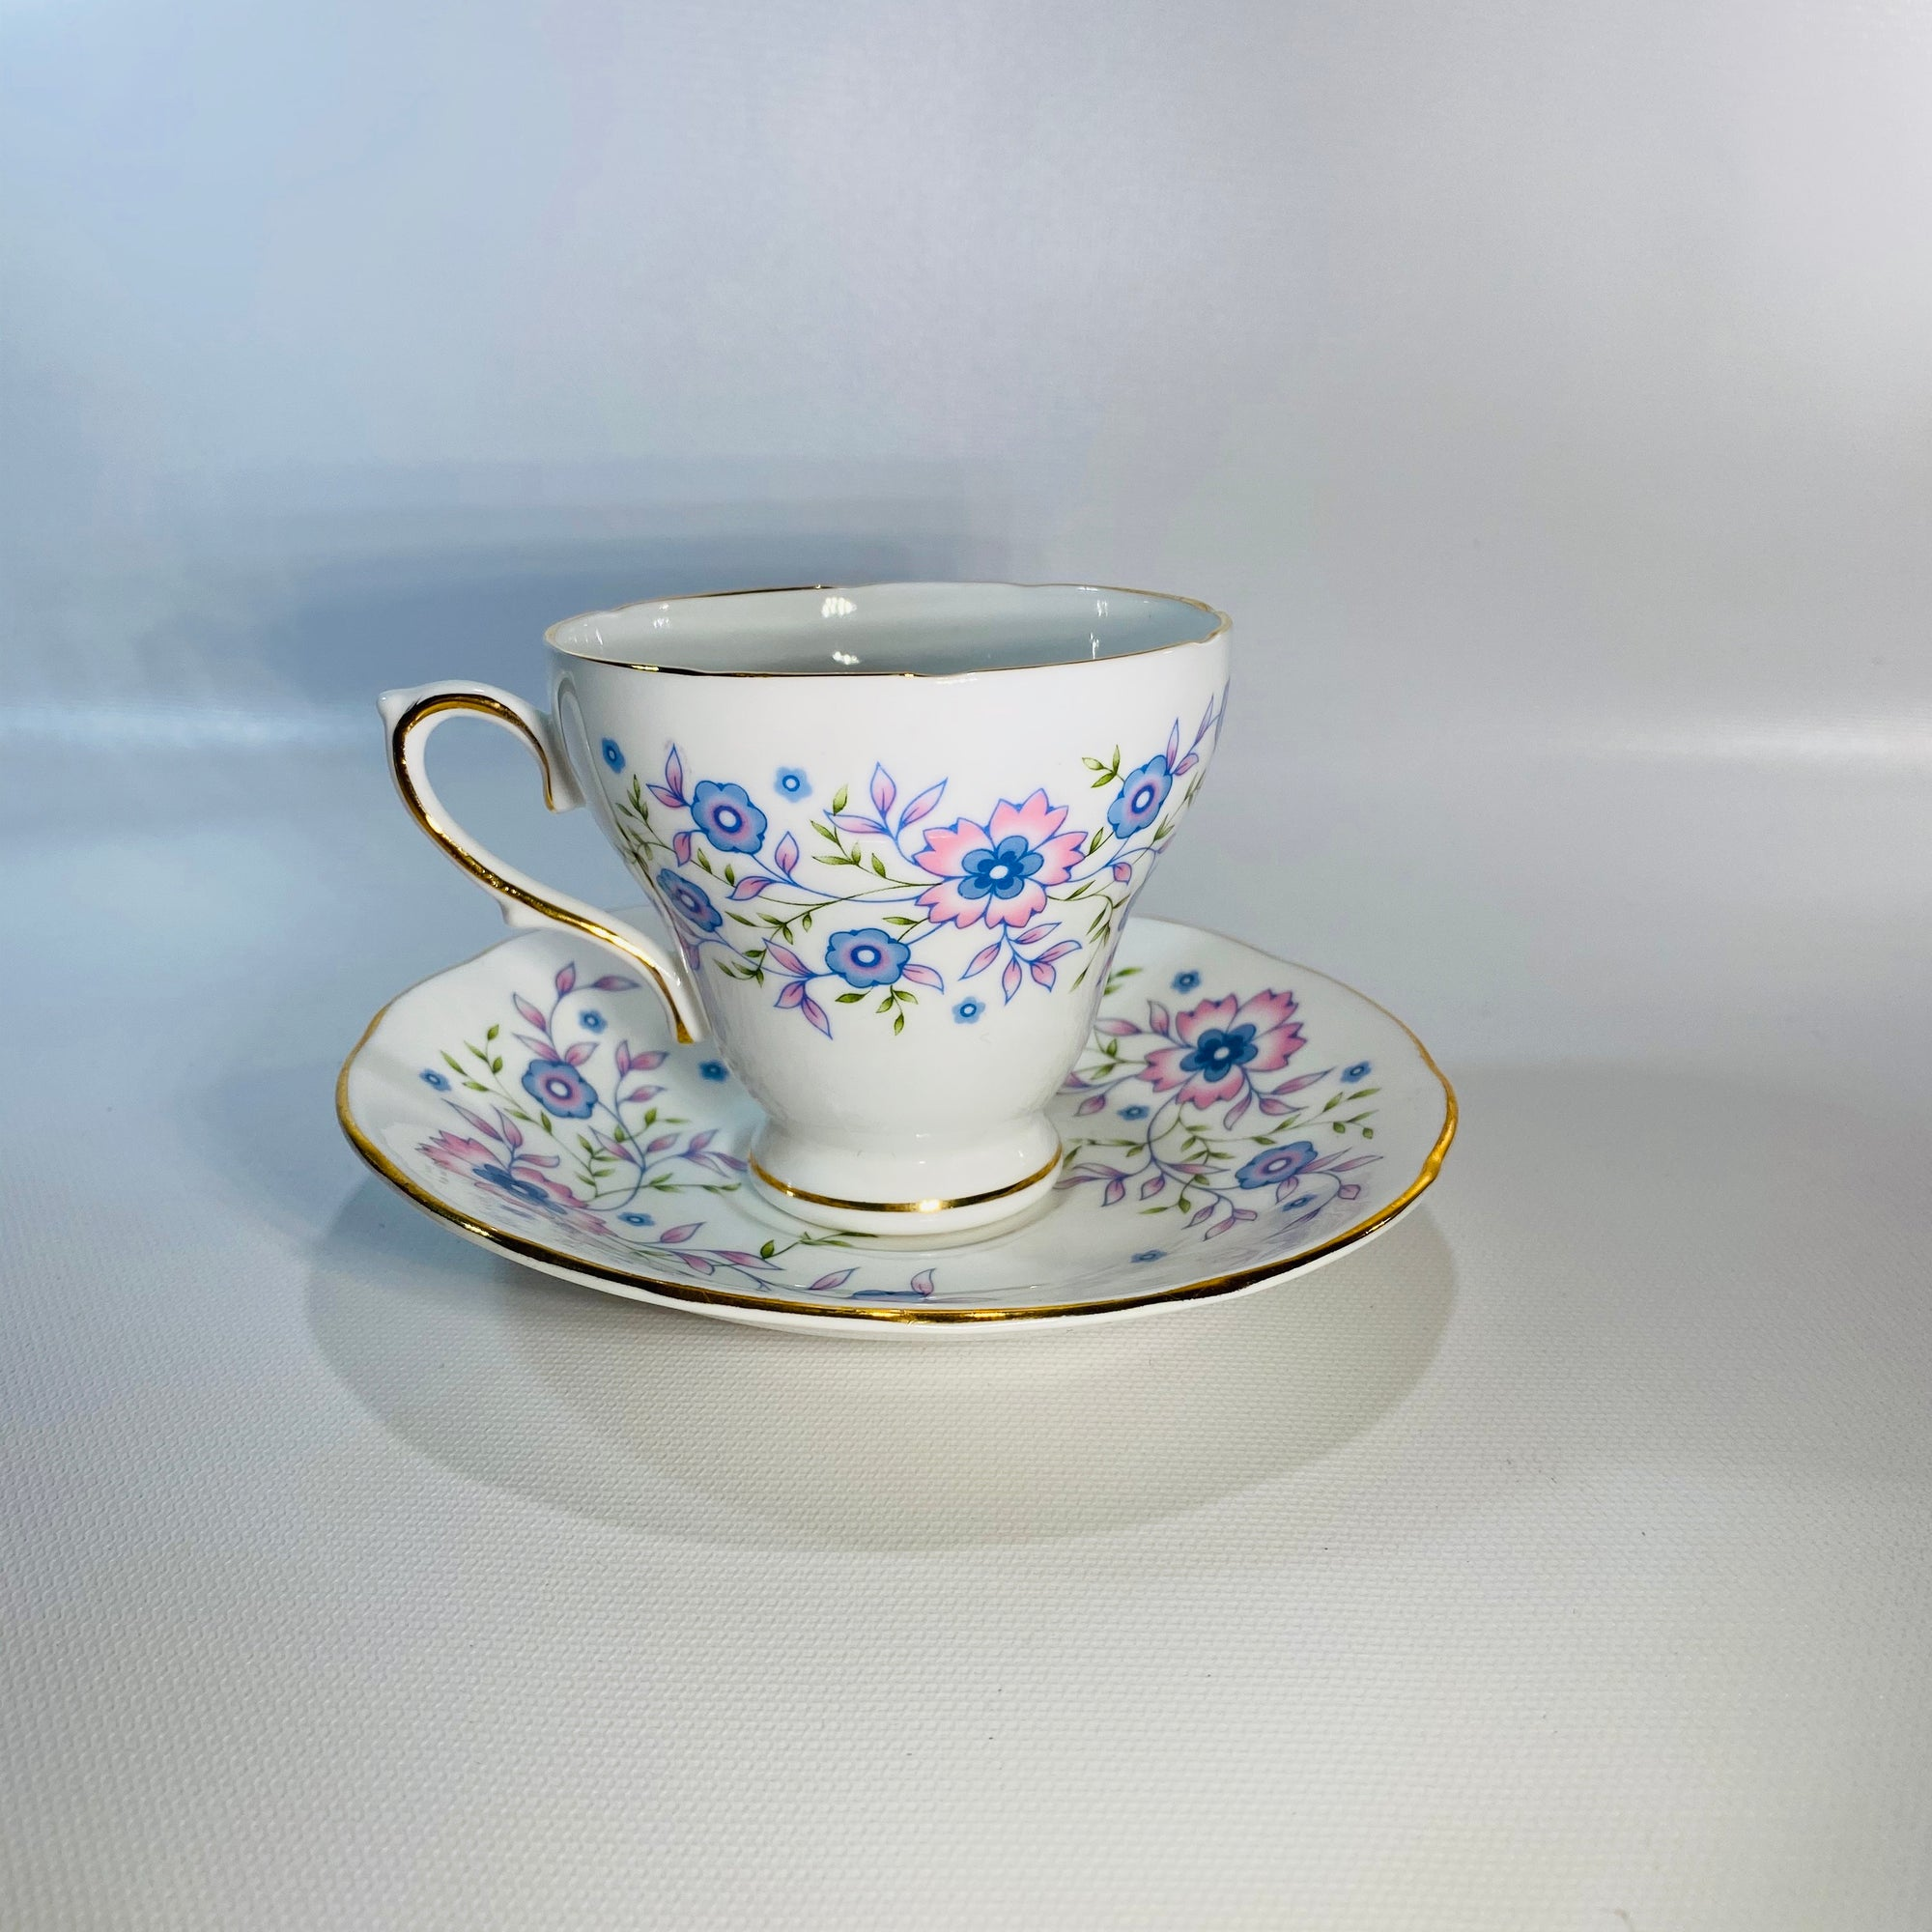 Blue Blossoms Avon Fine Bone China Teacup & Saucer Made  England 1974